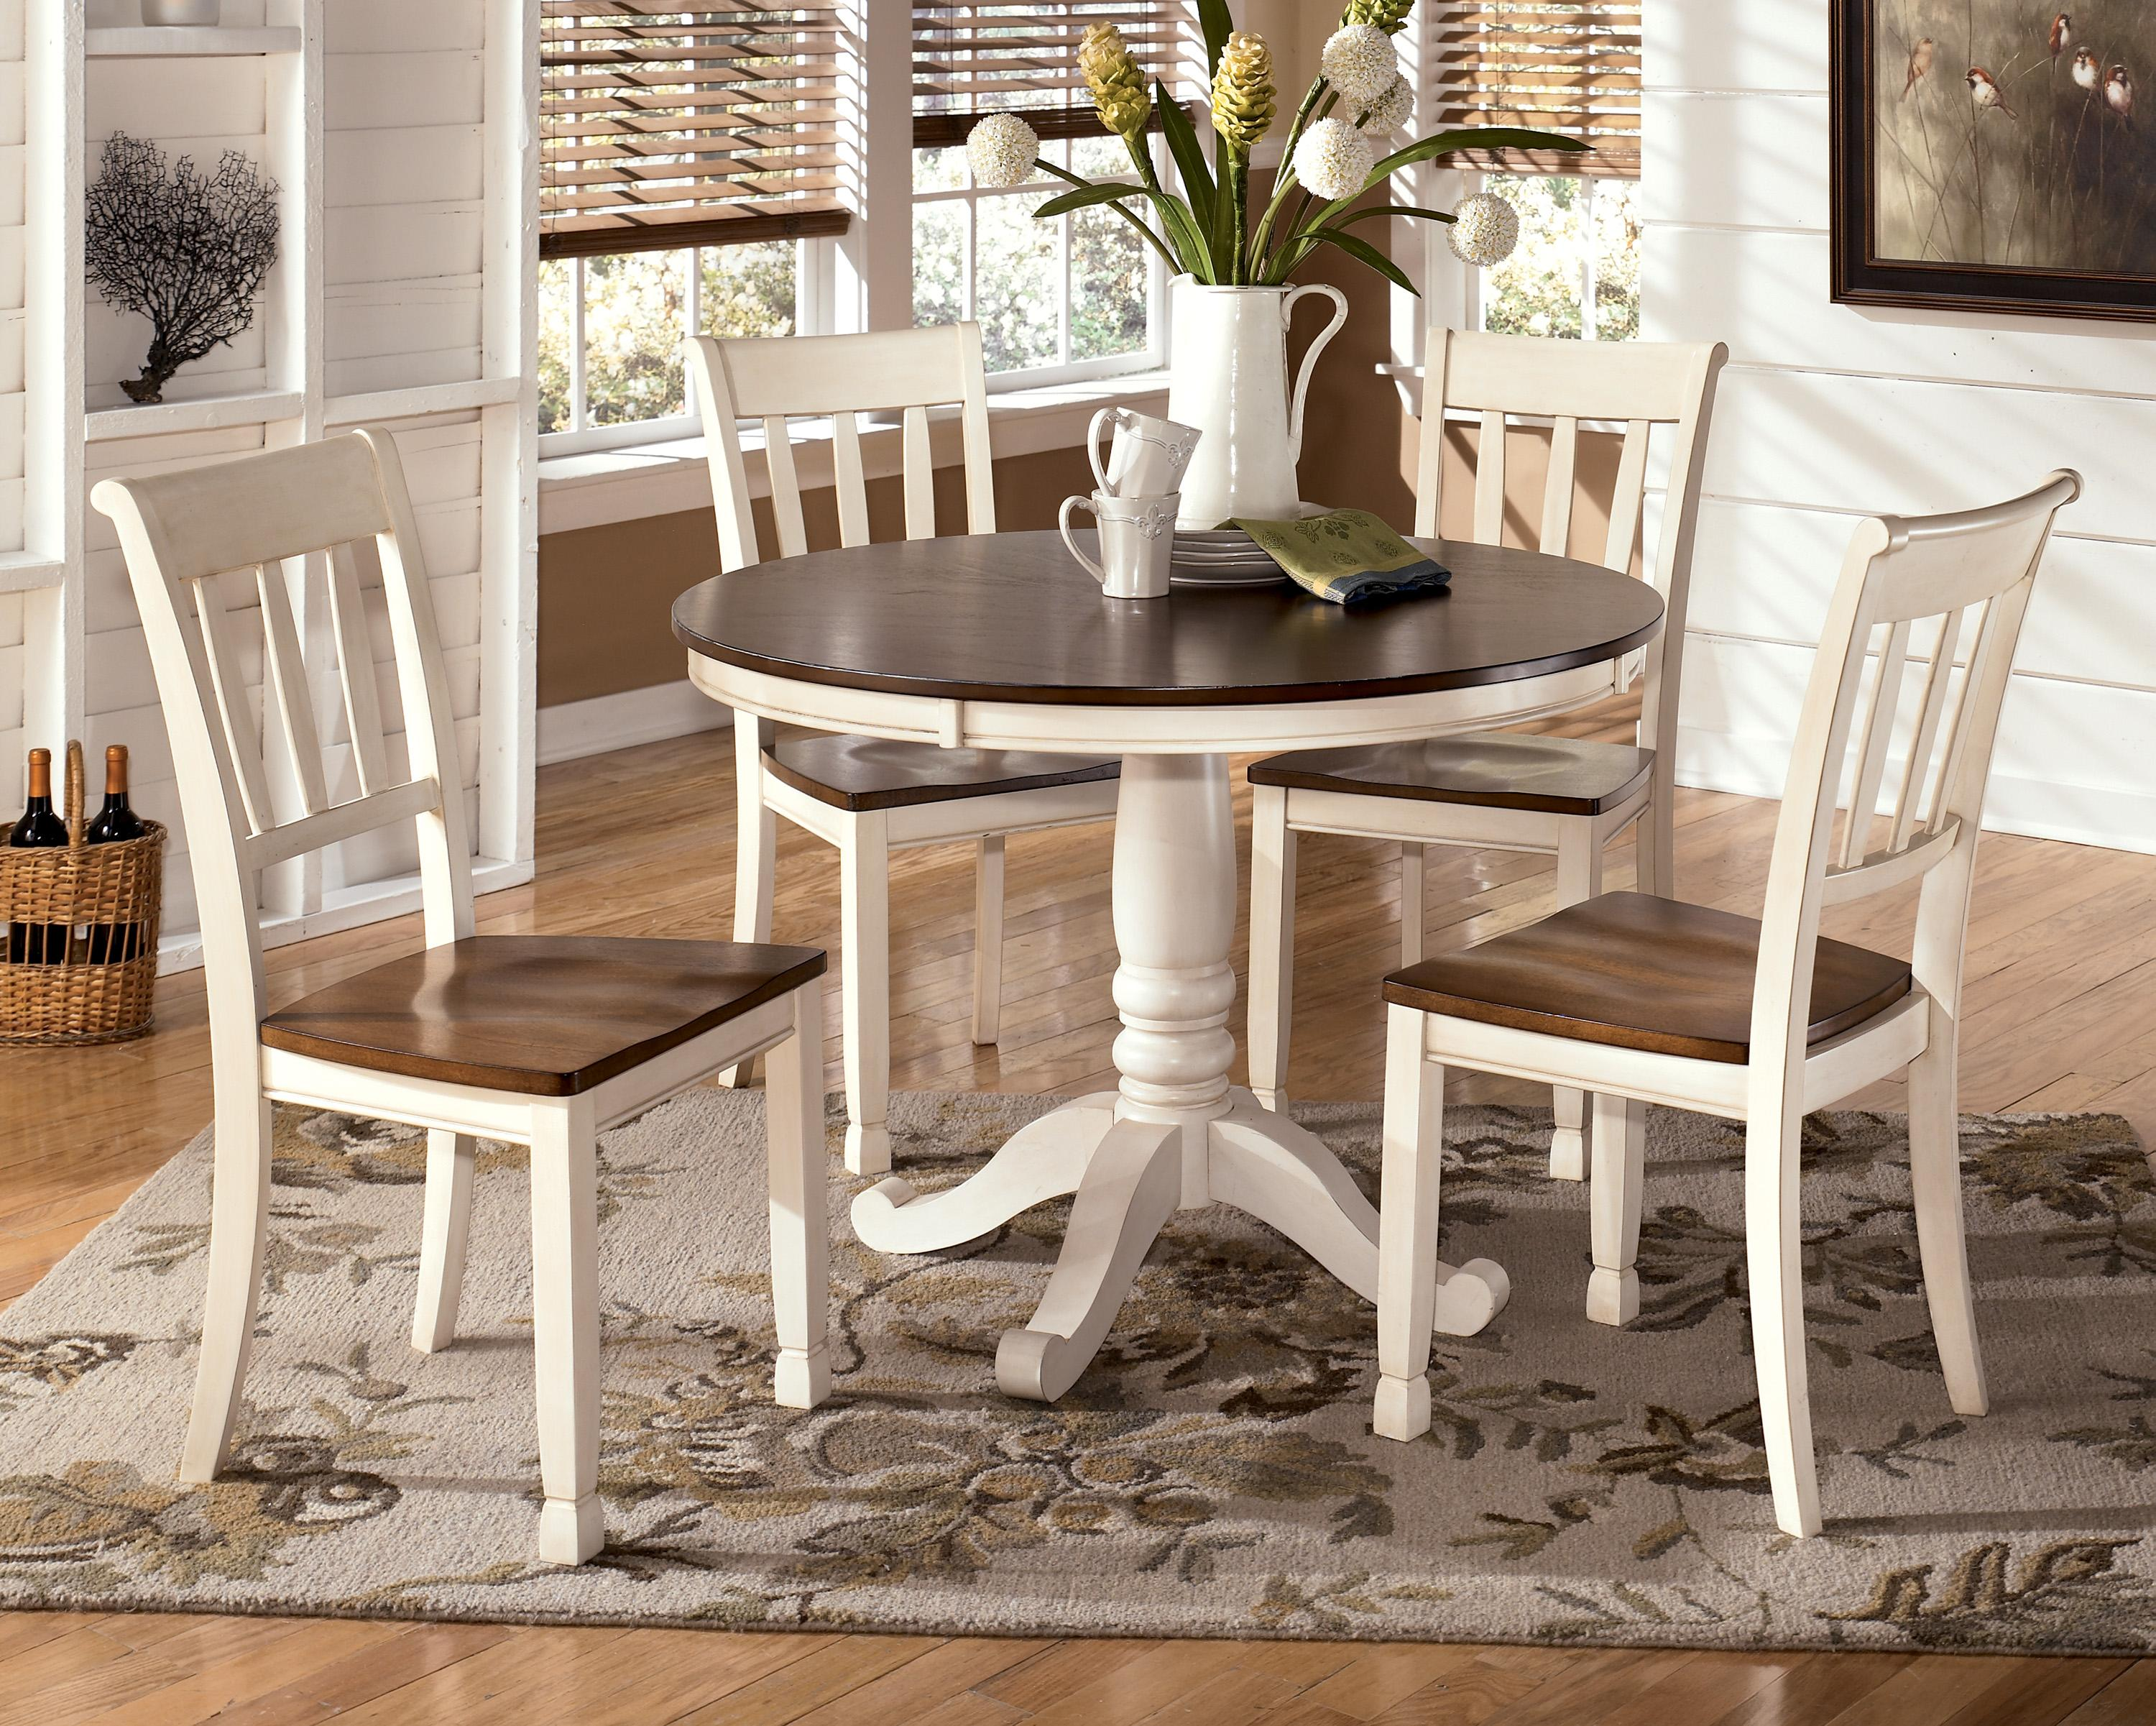 Signature Design by Ashley Whitesburg 5-Piece Round Table Set - Item Number D583 & Signature Design by Ashley Whitesburg 5-Piece Two-Tone Cottage Round ...